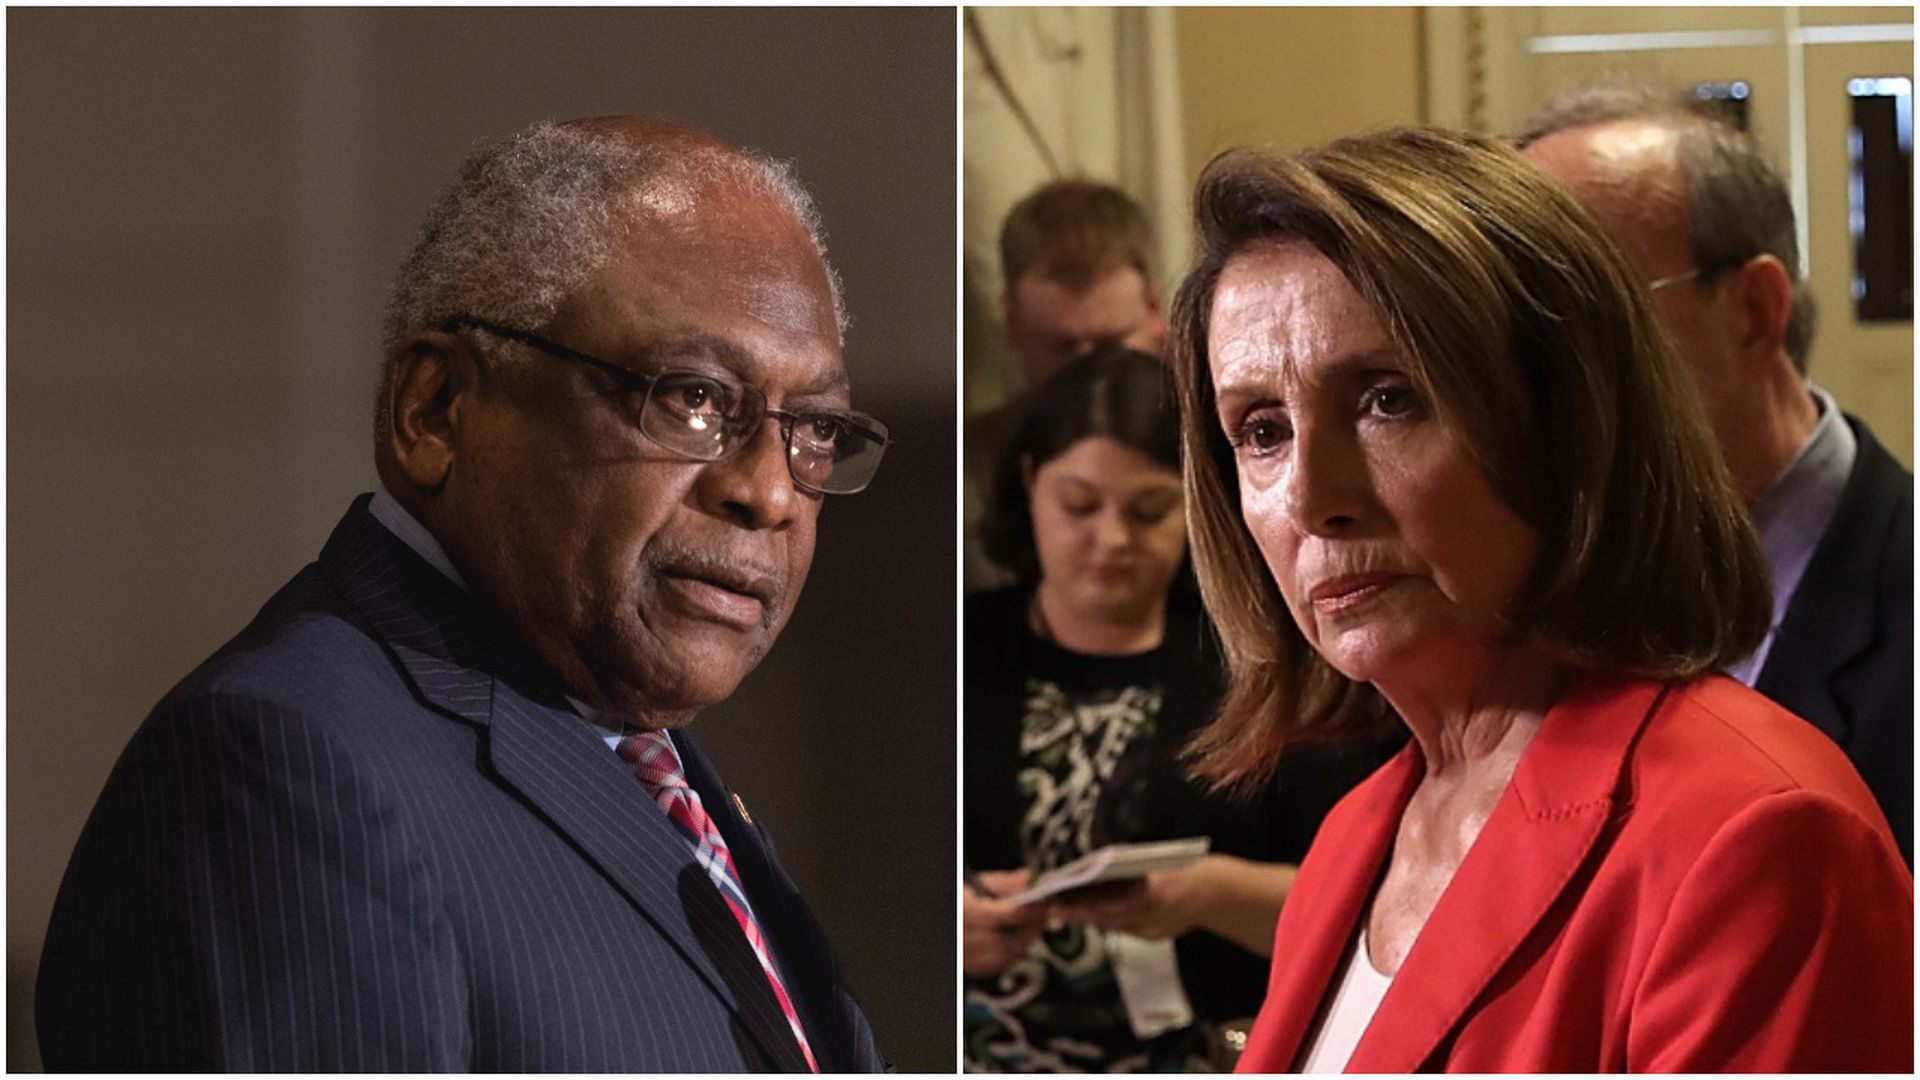 Side by side photos of Jim Clyburn on the left and Nancy Pelosi on the right